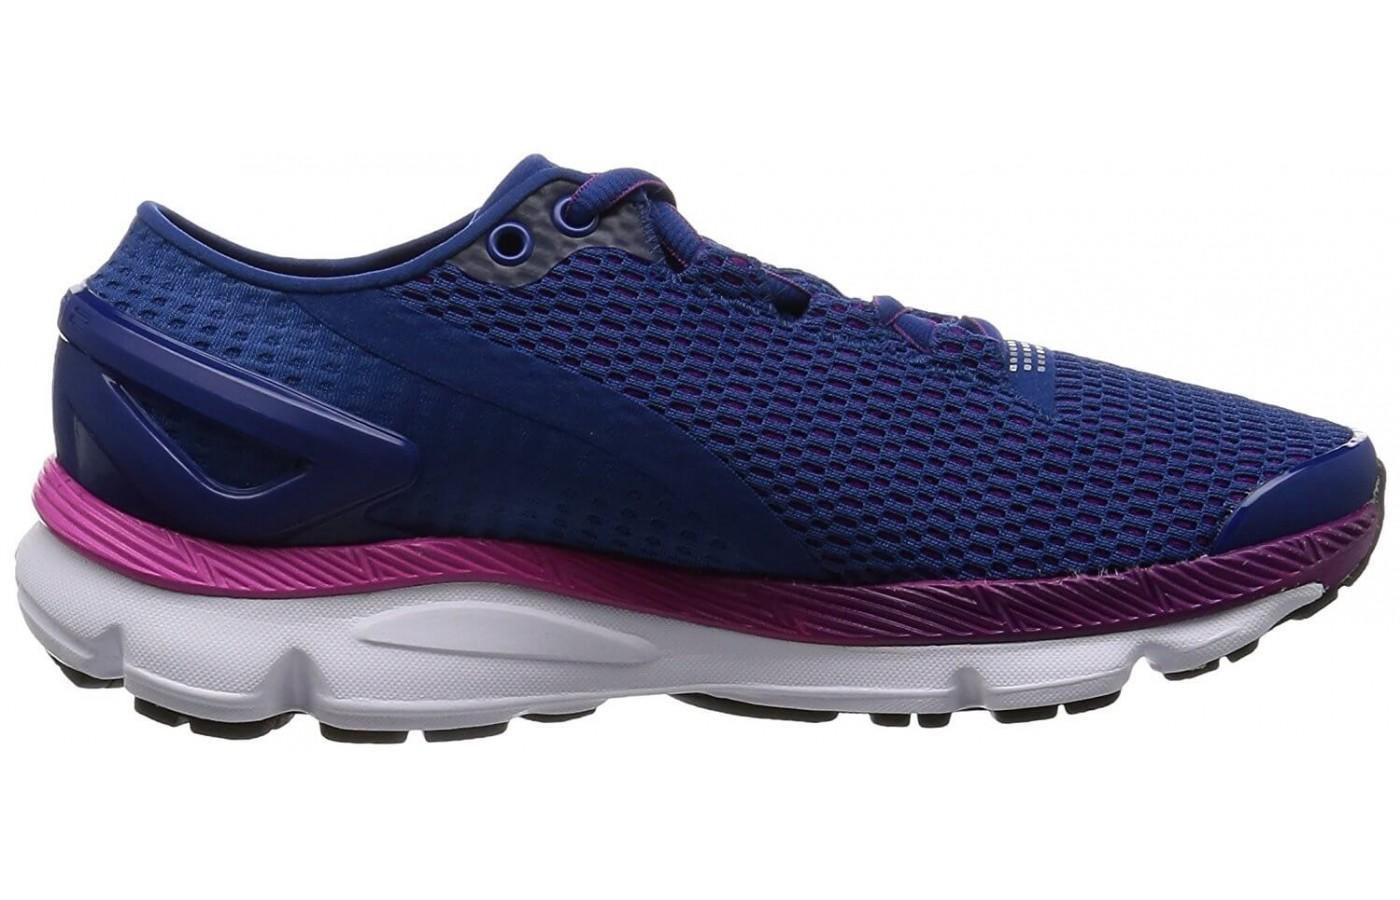 Runners love the sleek design and stylish look.